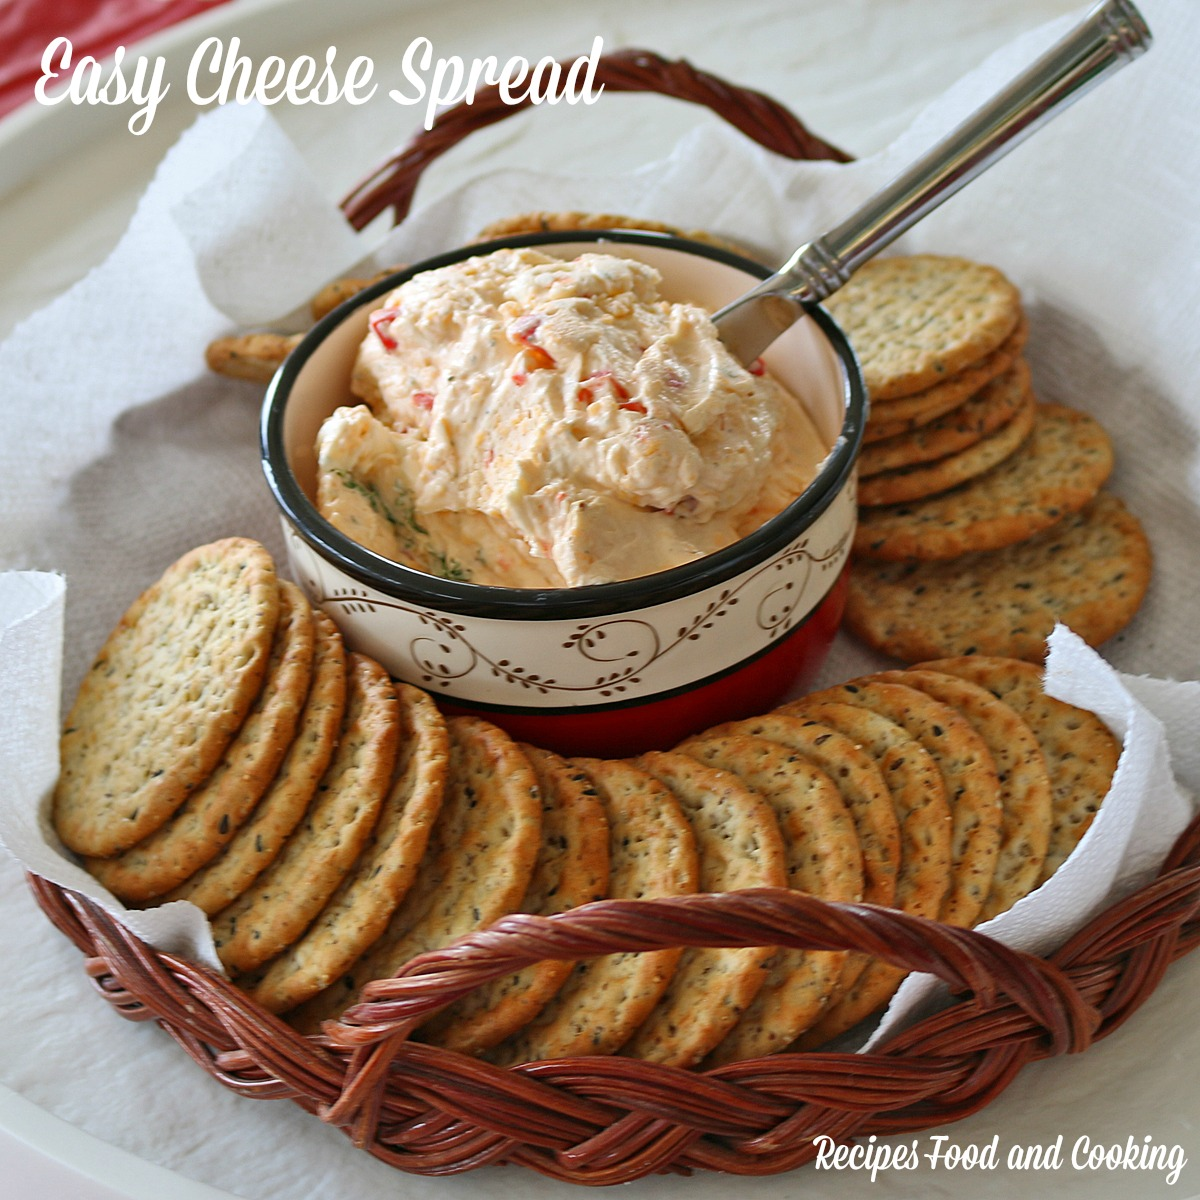 Easy Cheese Spread